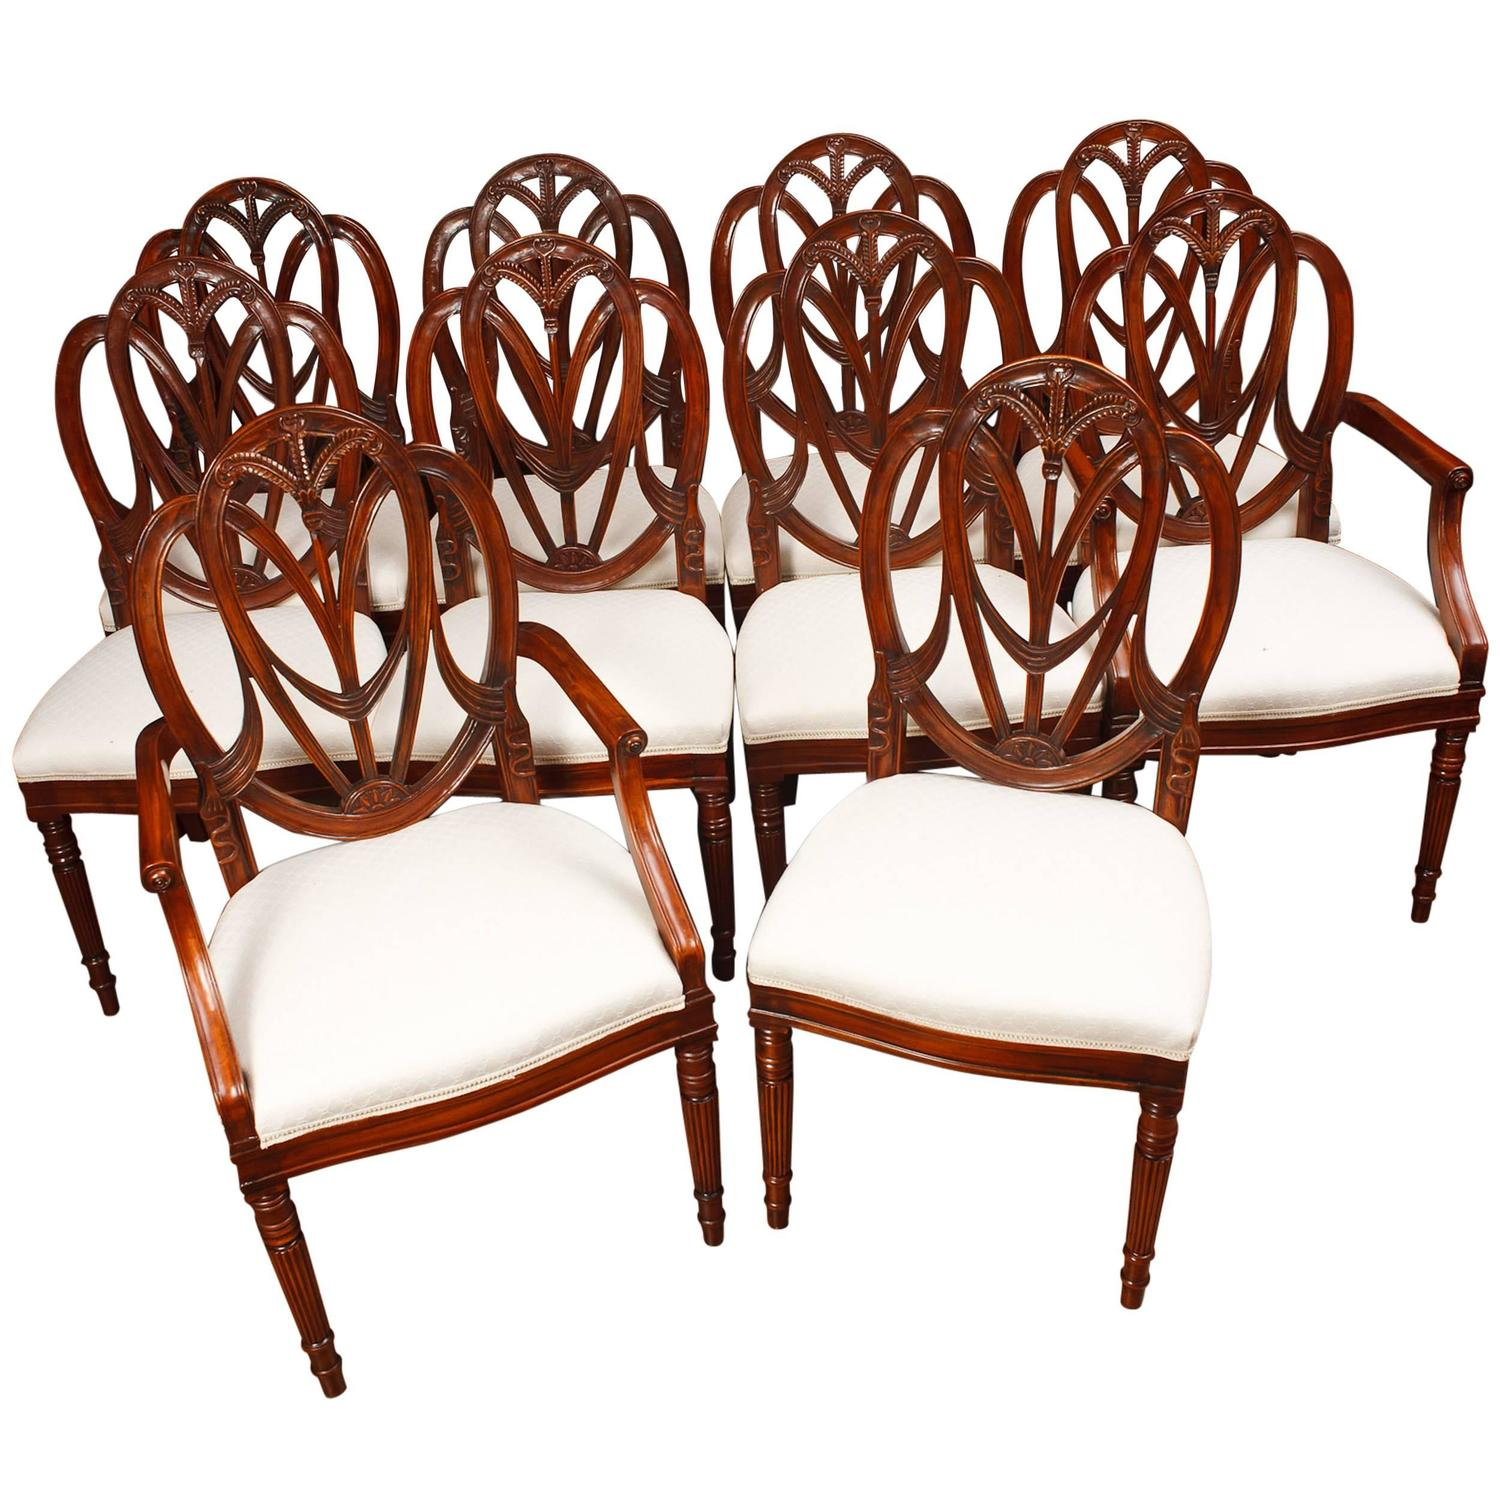 Set of Mahogany Hepplewhite Style Dining Chairs at 1stdibs